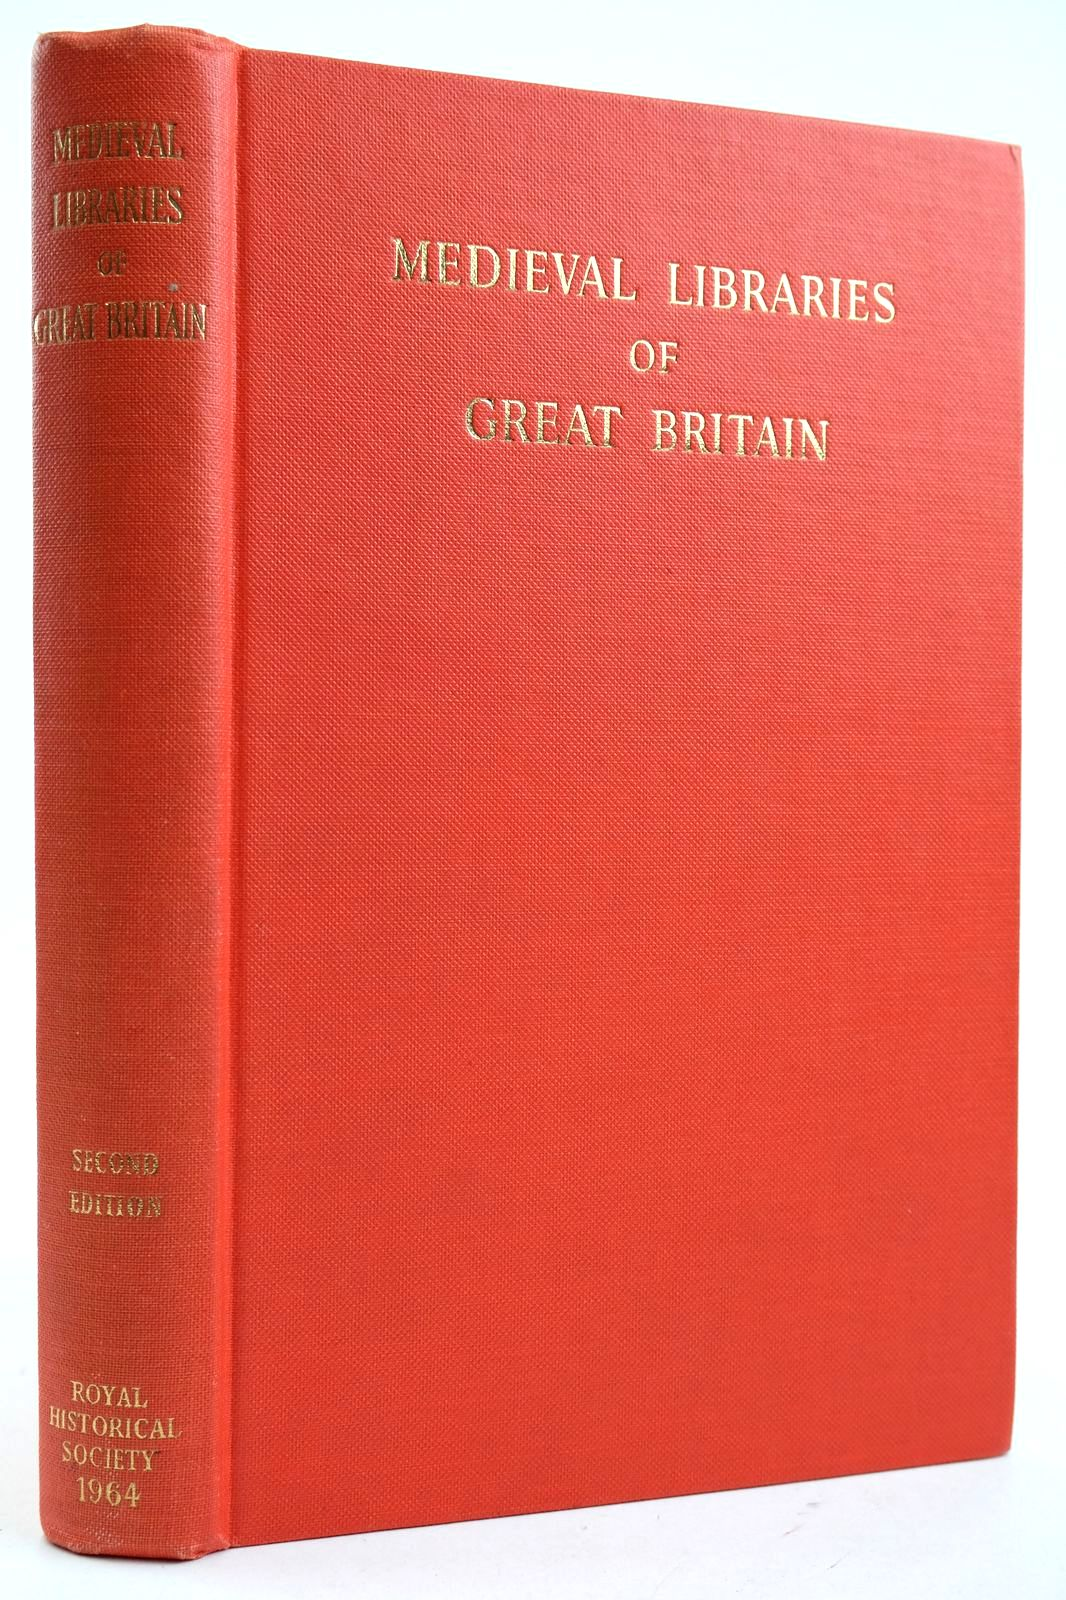 Photo of MEDIEVAL LIBRARIES OF GREAT BRITAIN A LIST OF SURVIVING BOOKS- Stock Number: 2132612